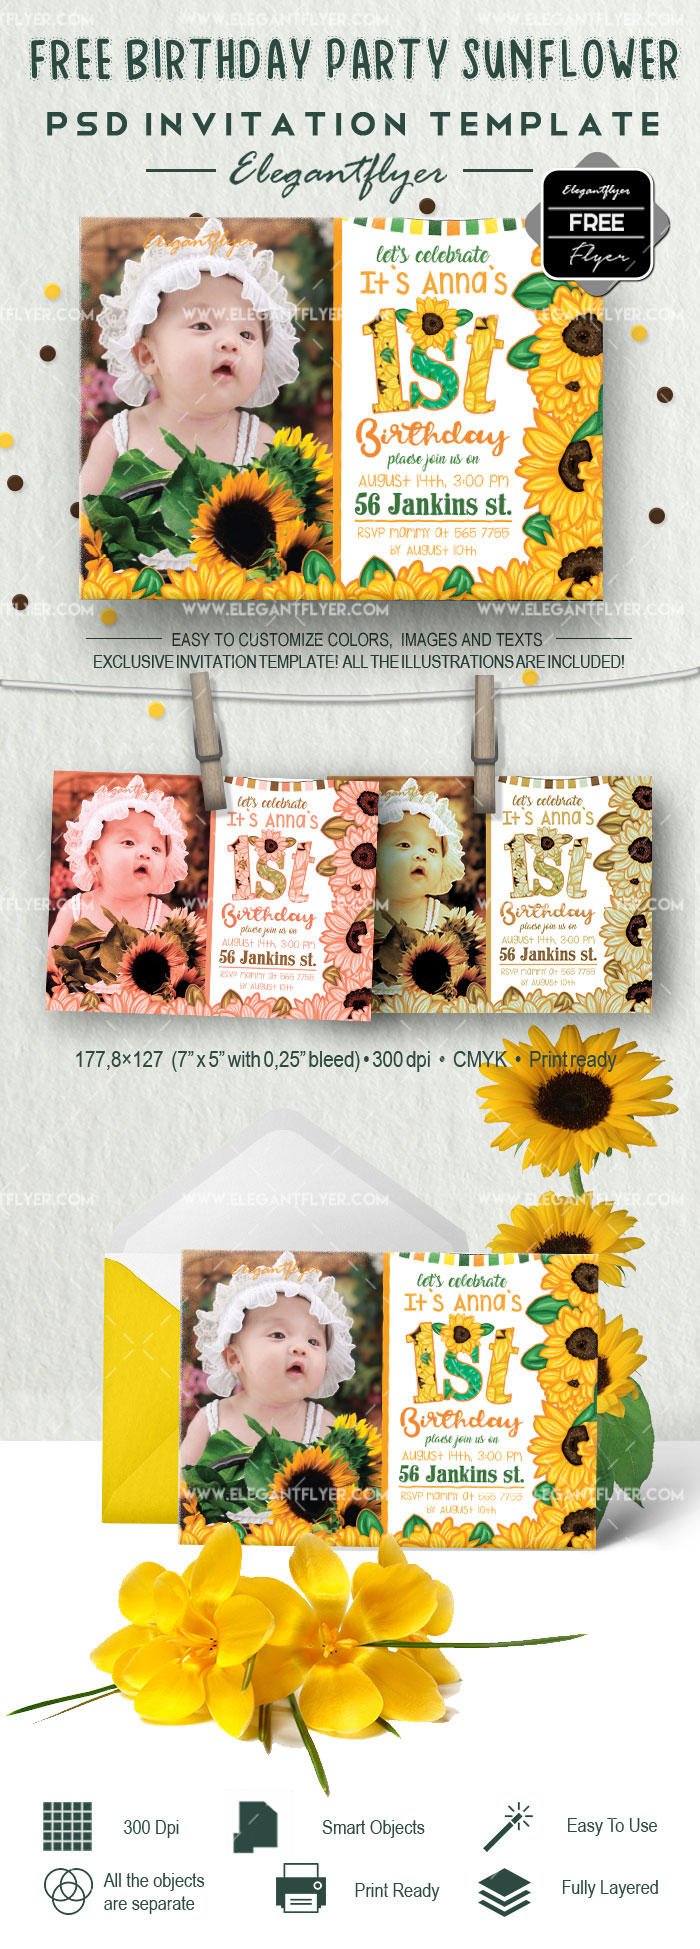 Free Invitation for Birthday Party Sunflower